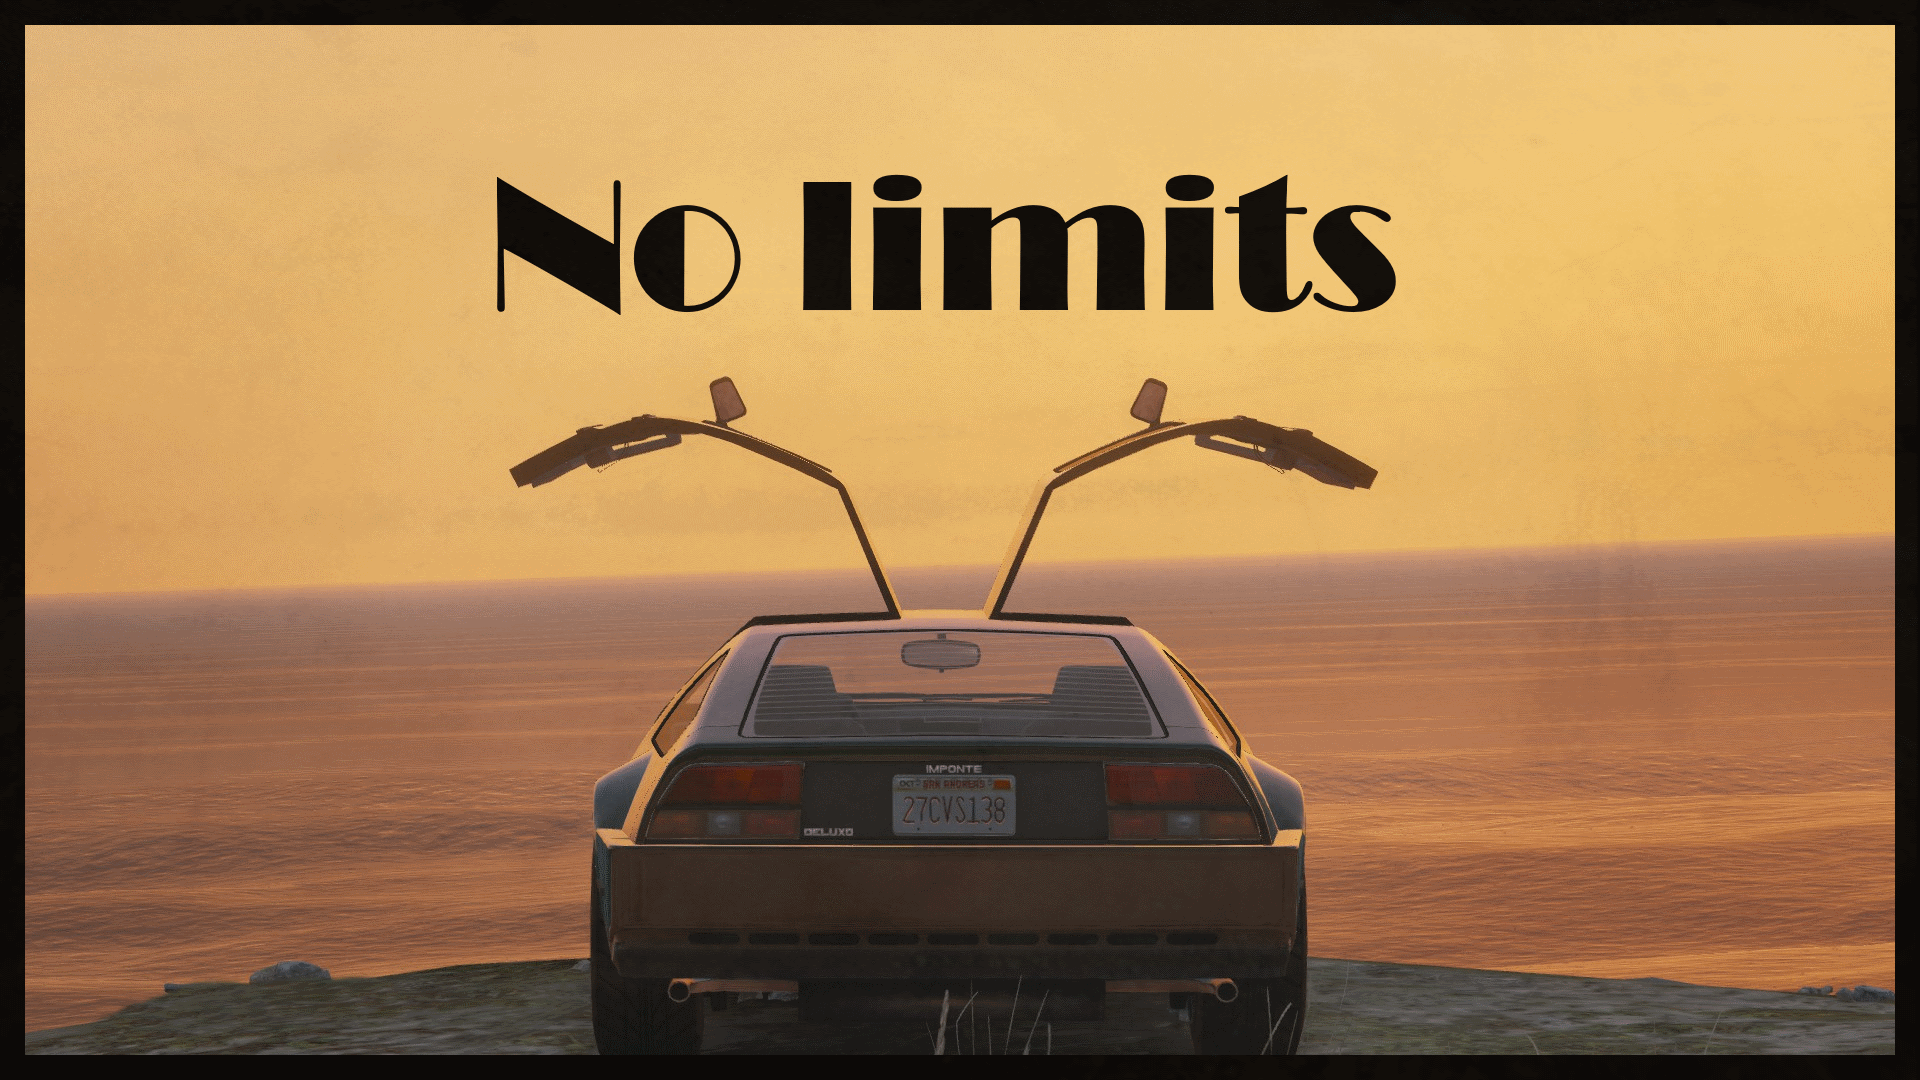 Imponte retro deluxo add on replace tuning gta5 for Gidea no limits